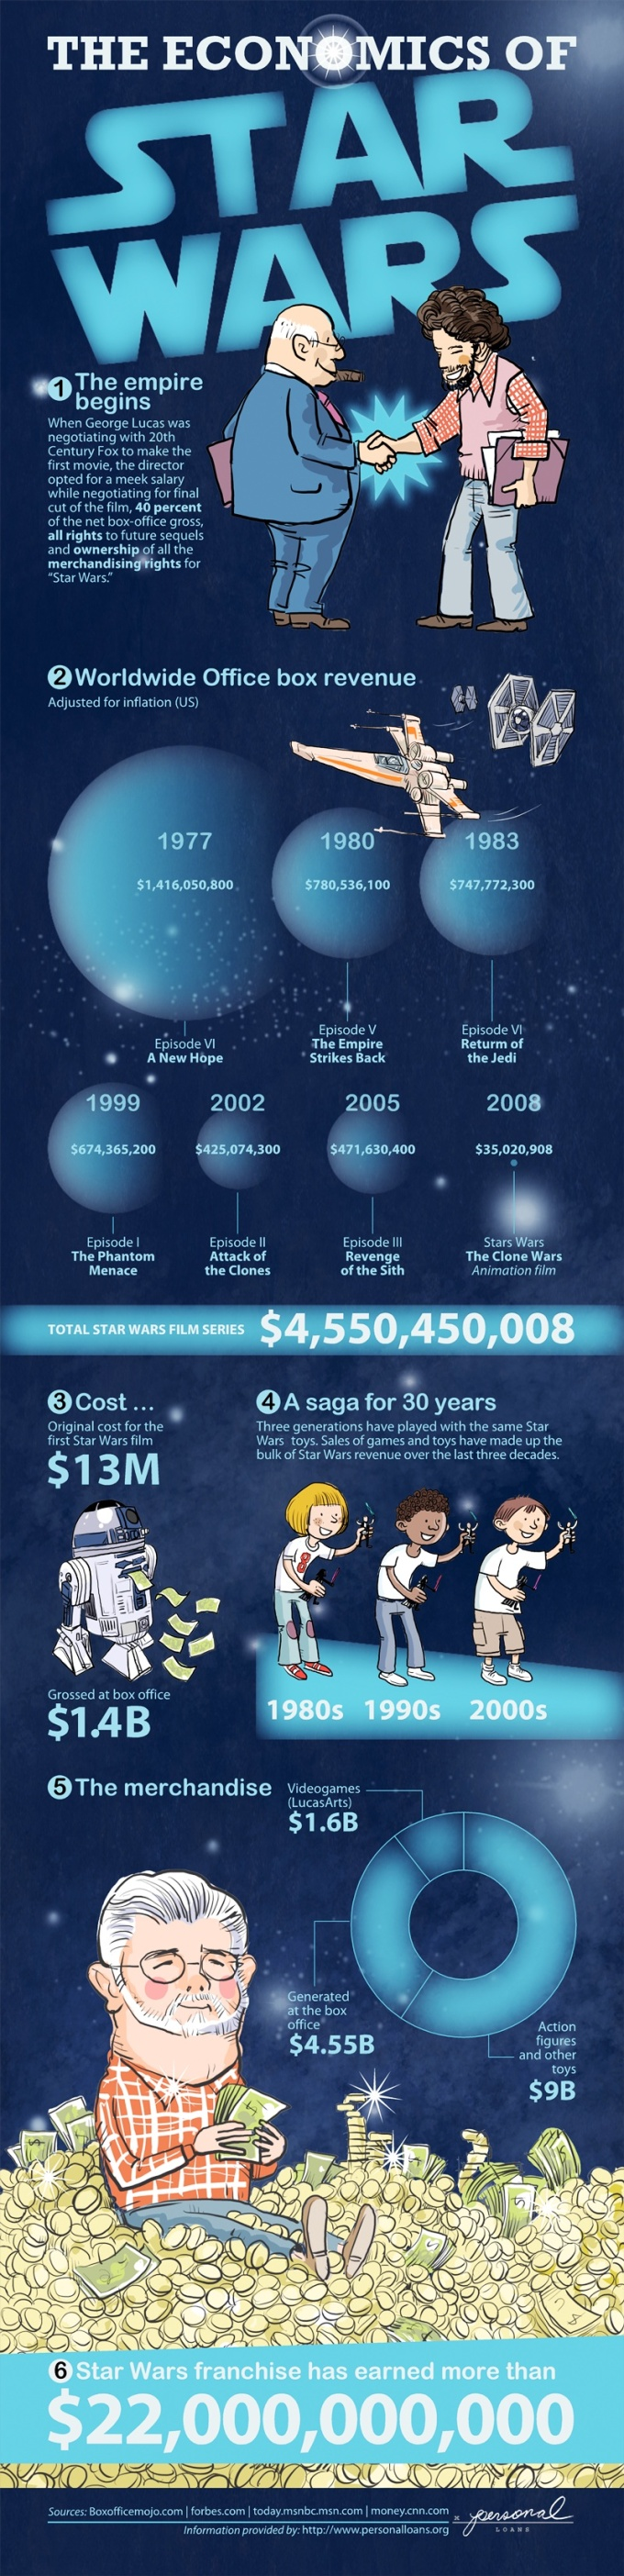 economics-of-star-wars-infographic